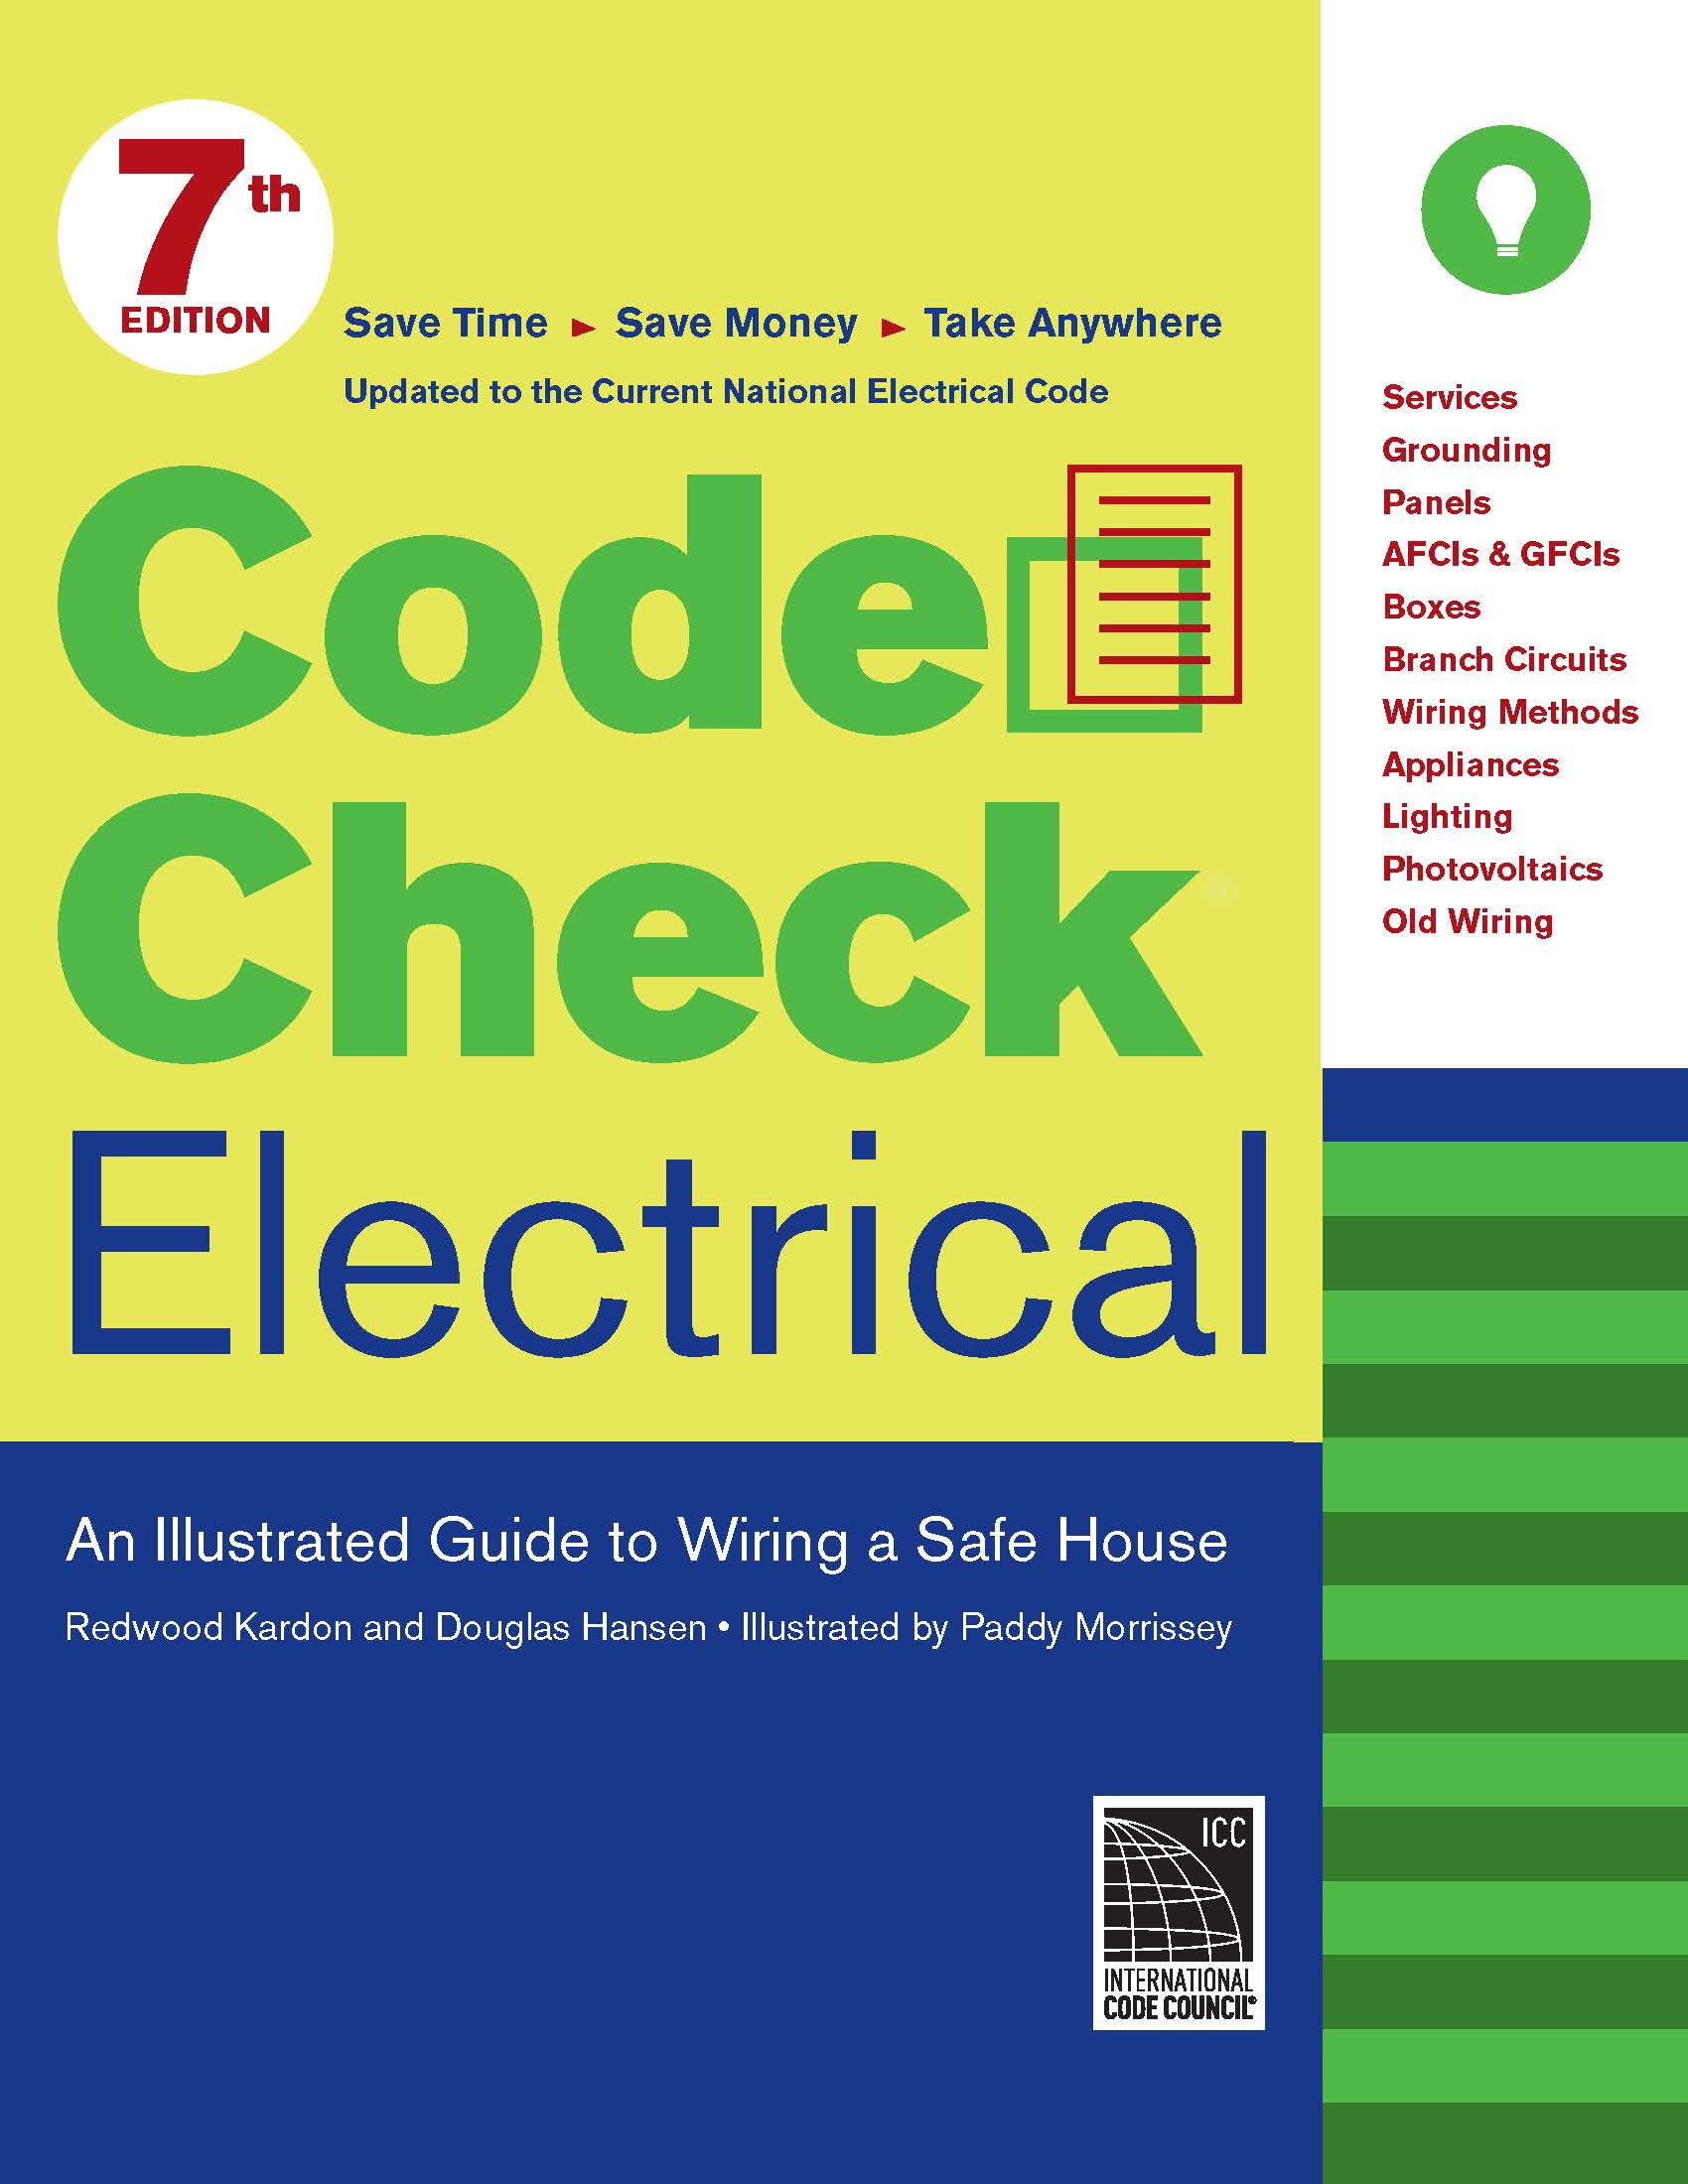 Code Check Electrical: An Illustrated Guide to Wiring a Safe House: Redwood  Kardon, Douglas Hansen, Paddy Morrissey: 9781621137788: Amazon.com: Books